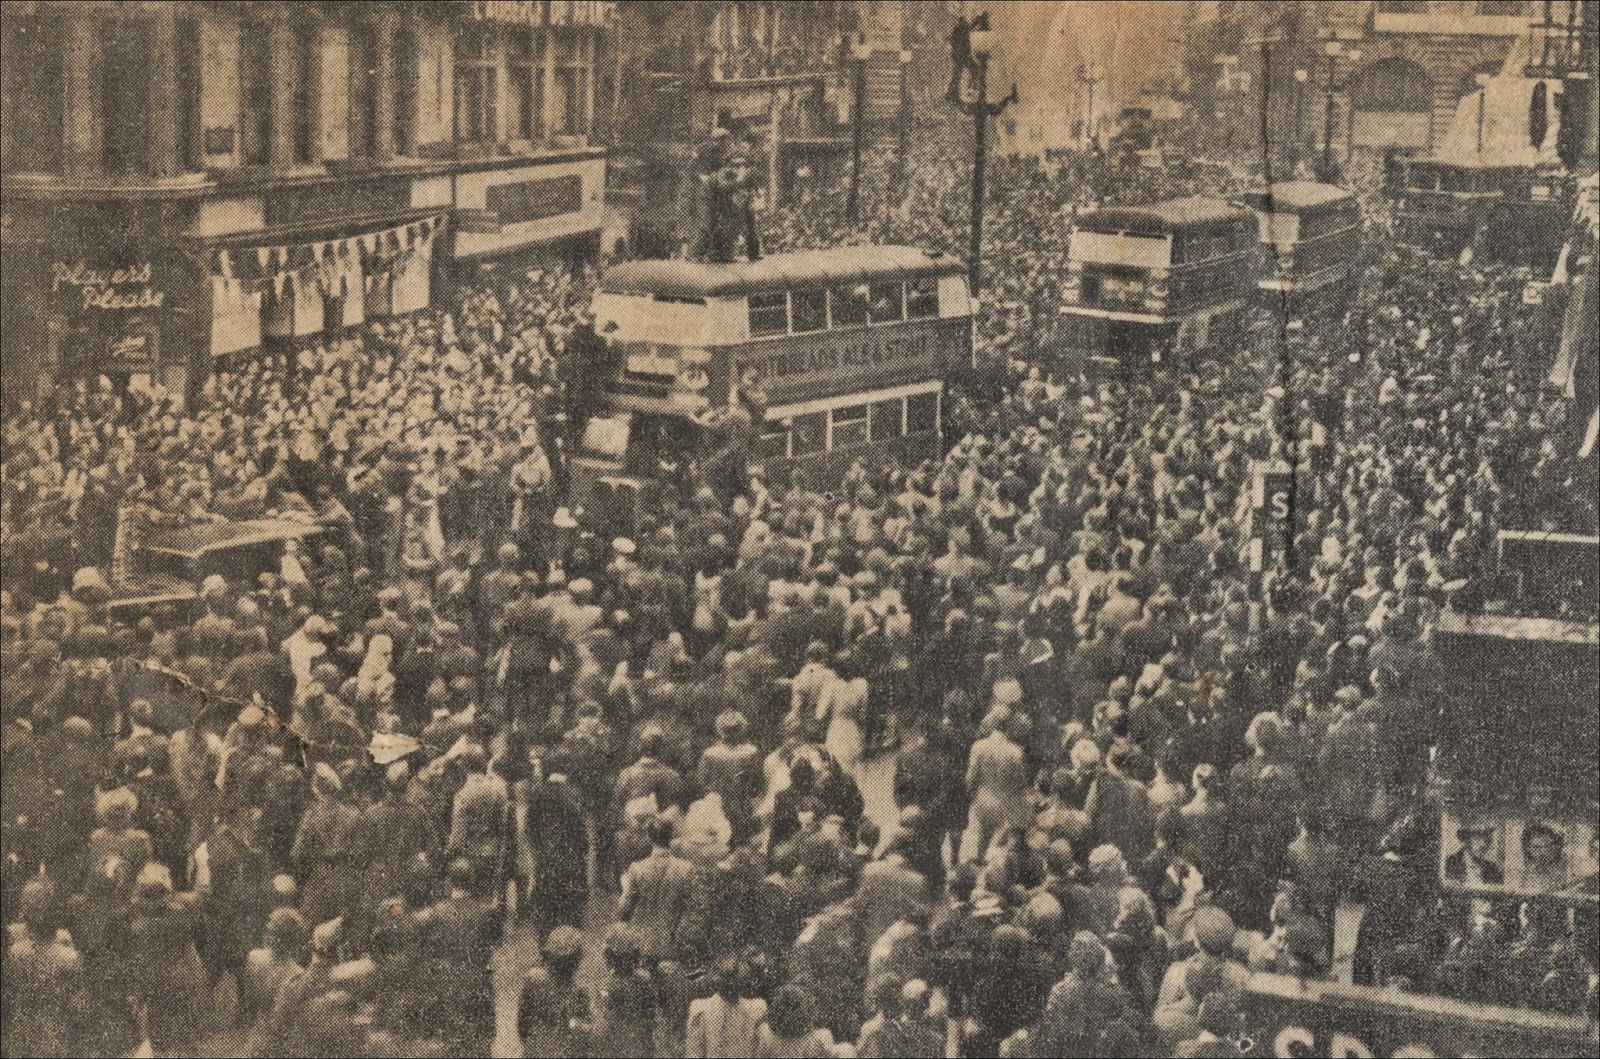 VE Day Celebrations photo